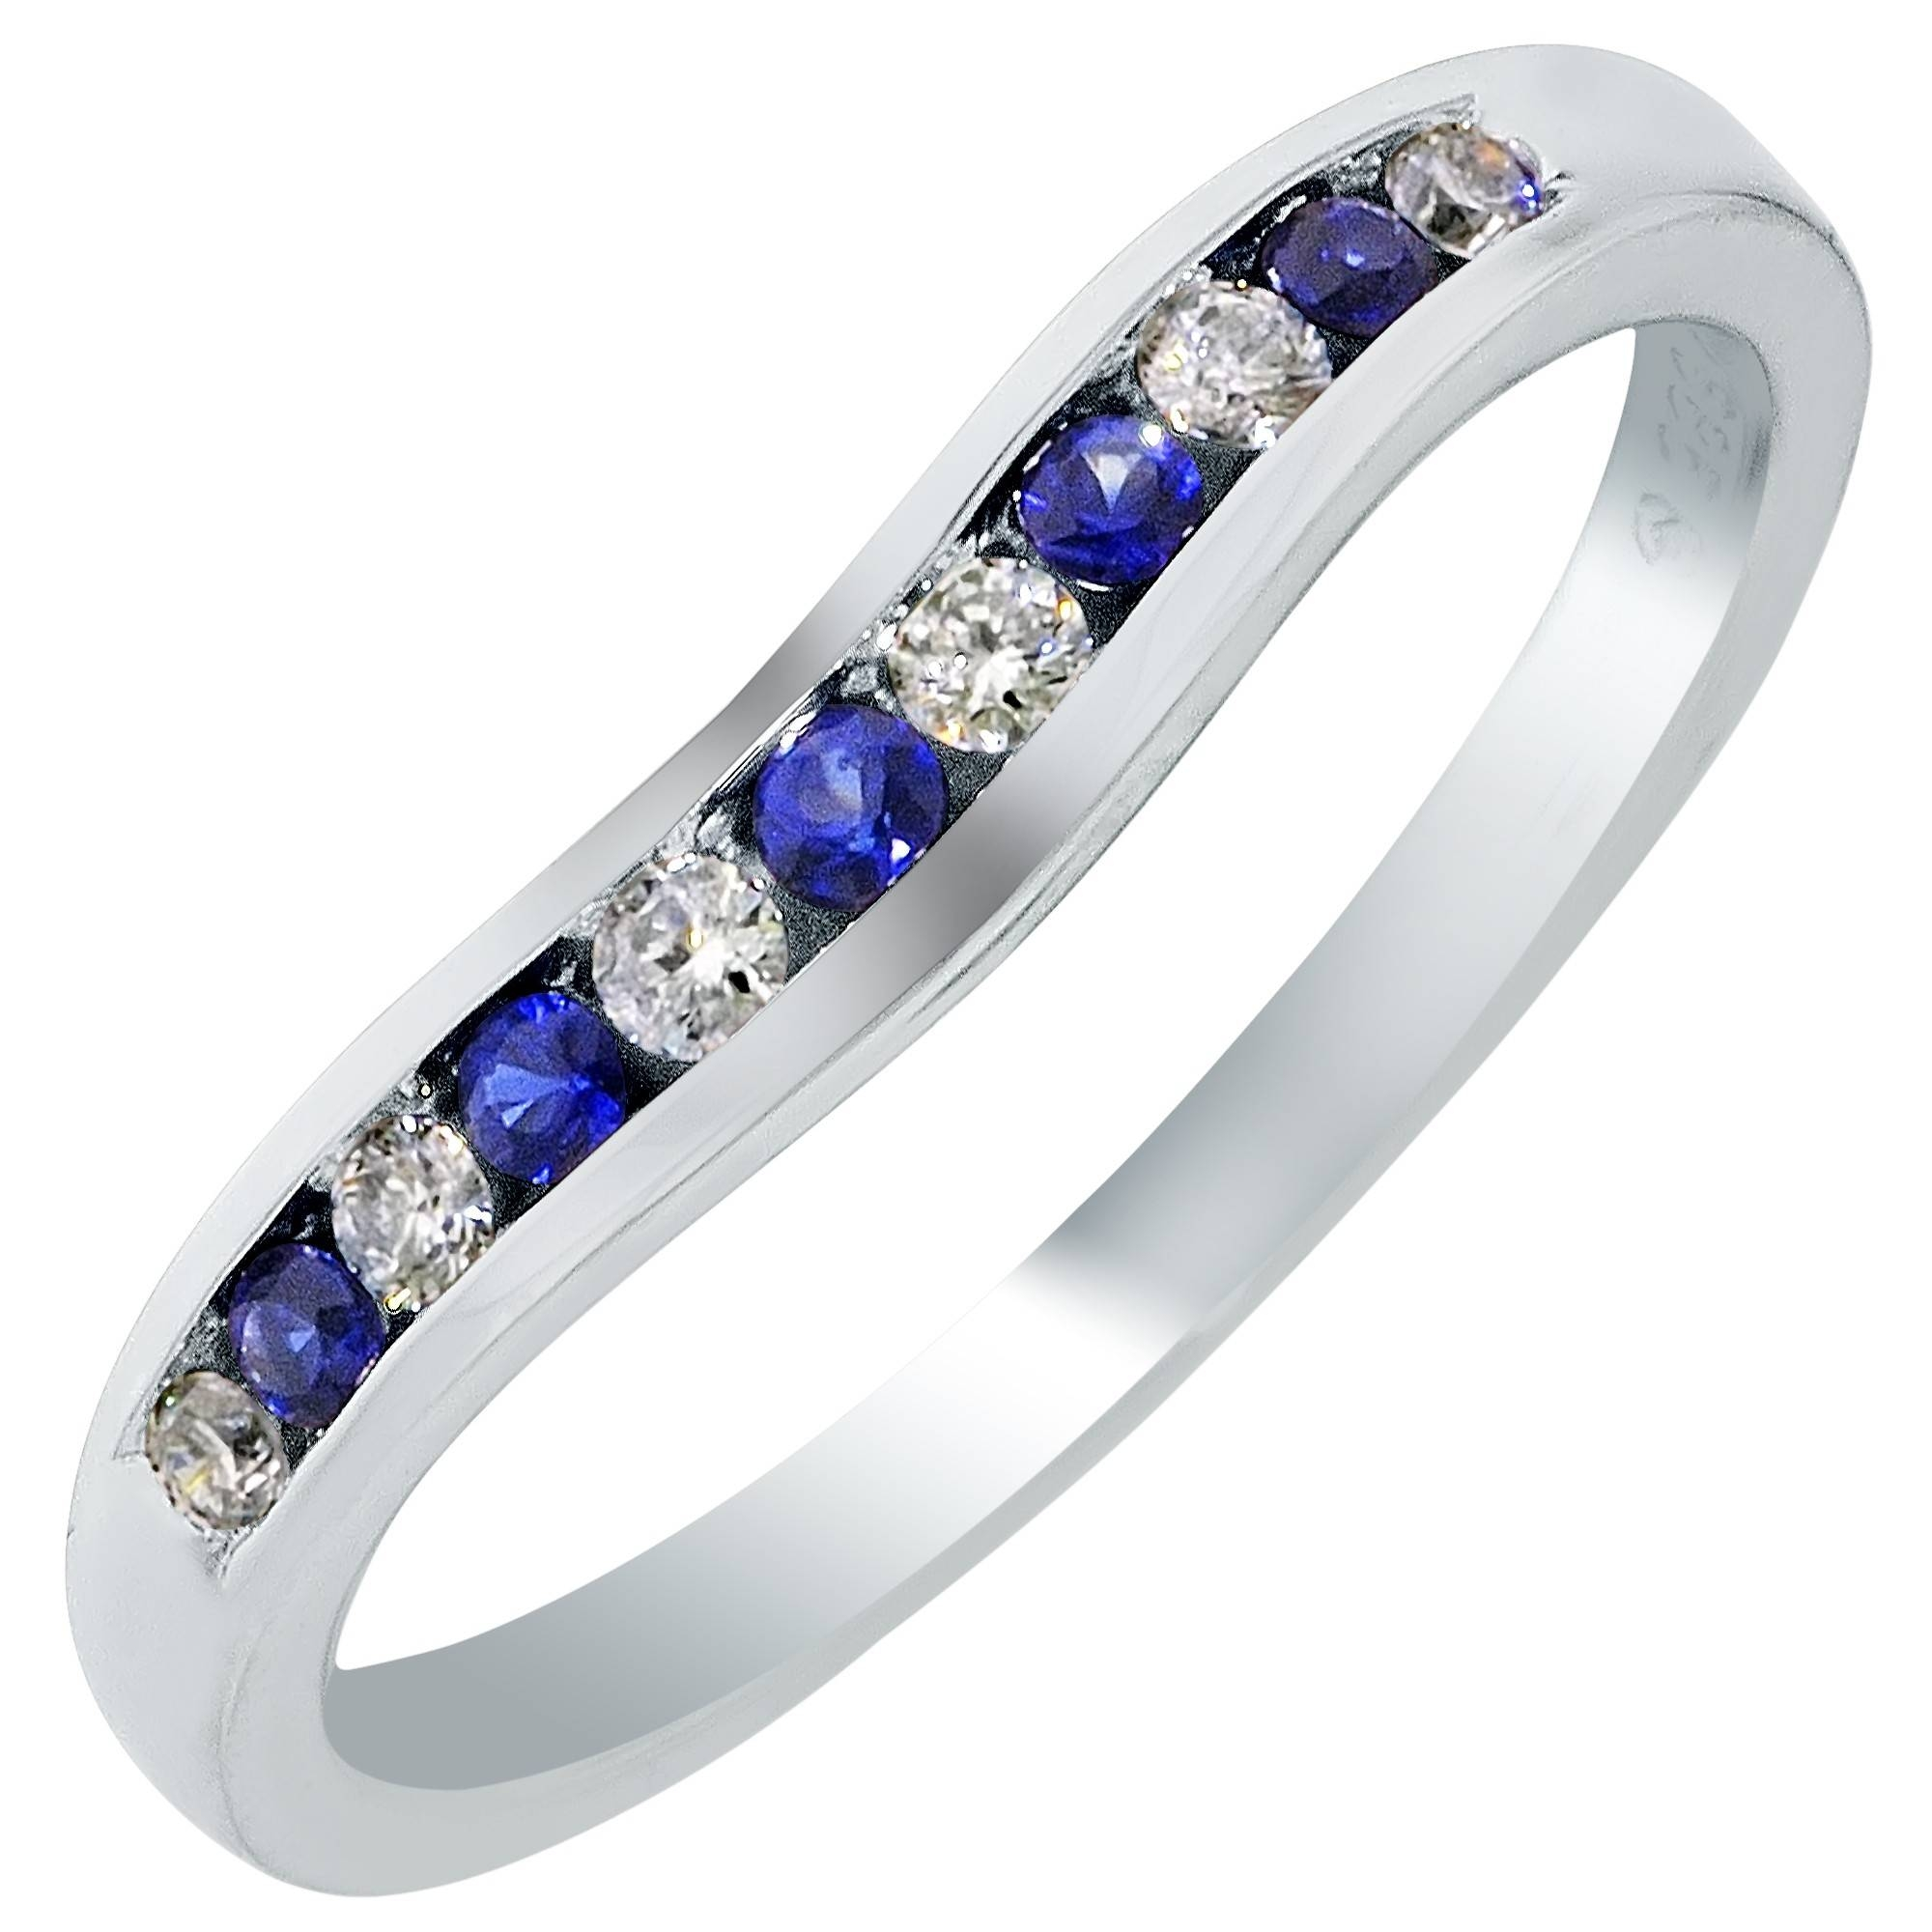 Curved Diamond And Sapphire Wedding Band In 14kt White Gold (1/4ct Tw) Within Wedding Bands With Gemstones (View 11 of 15)